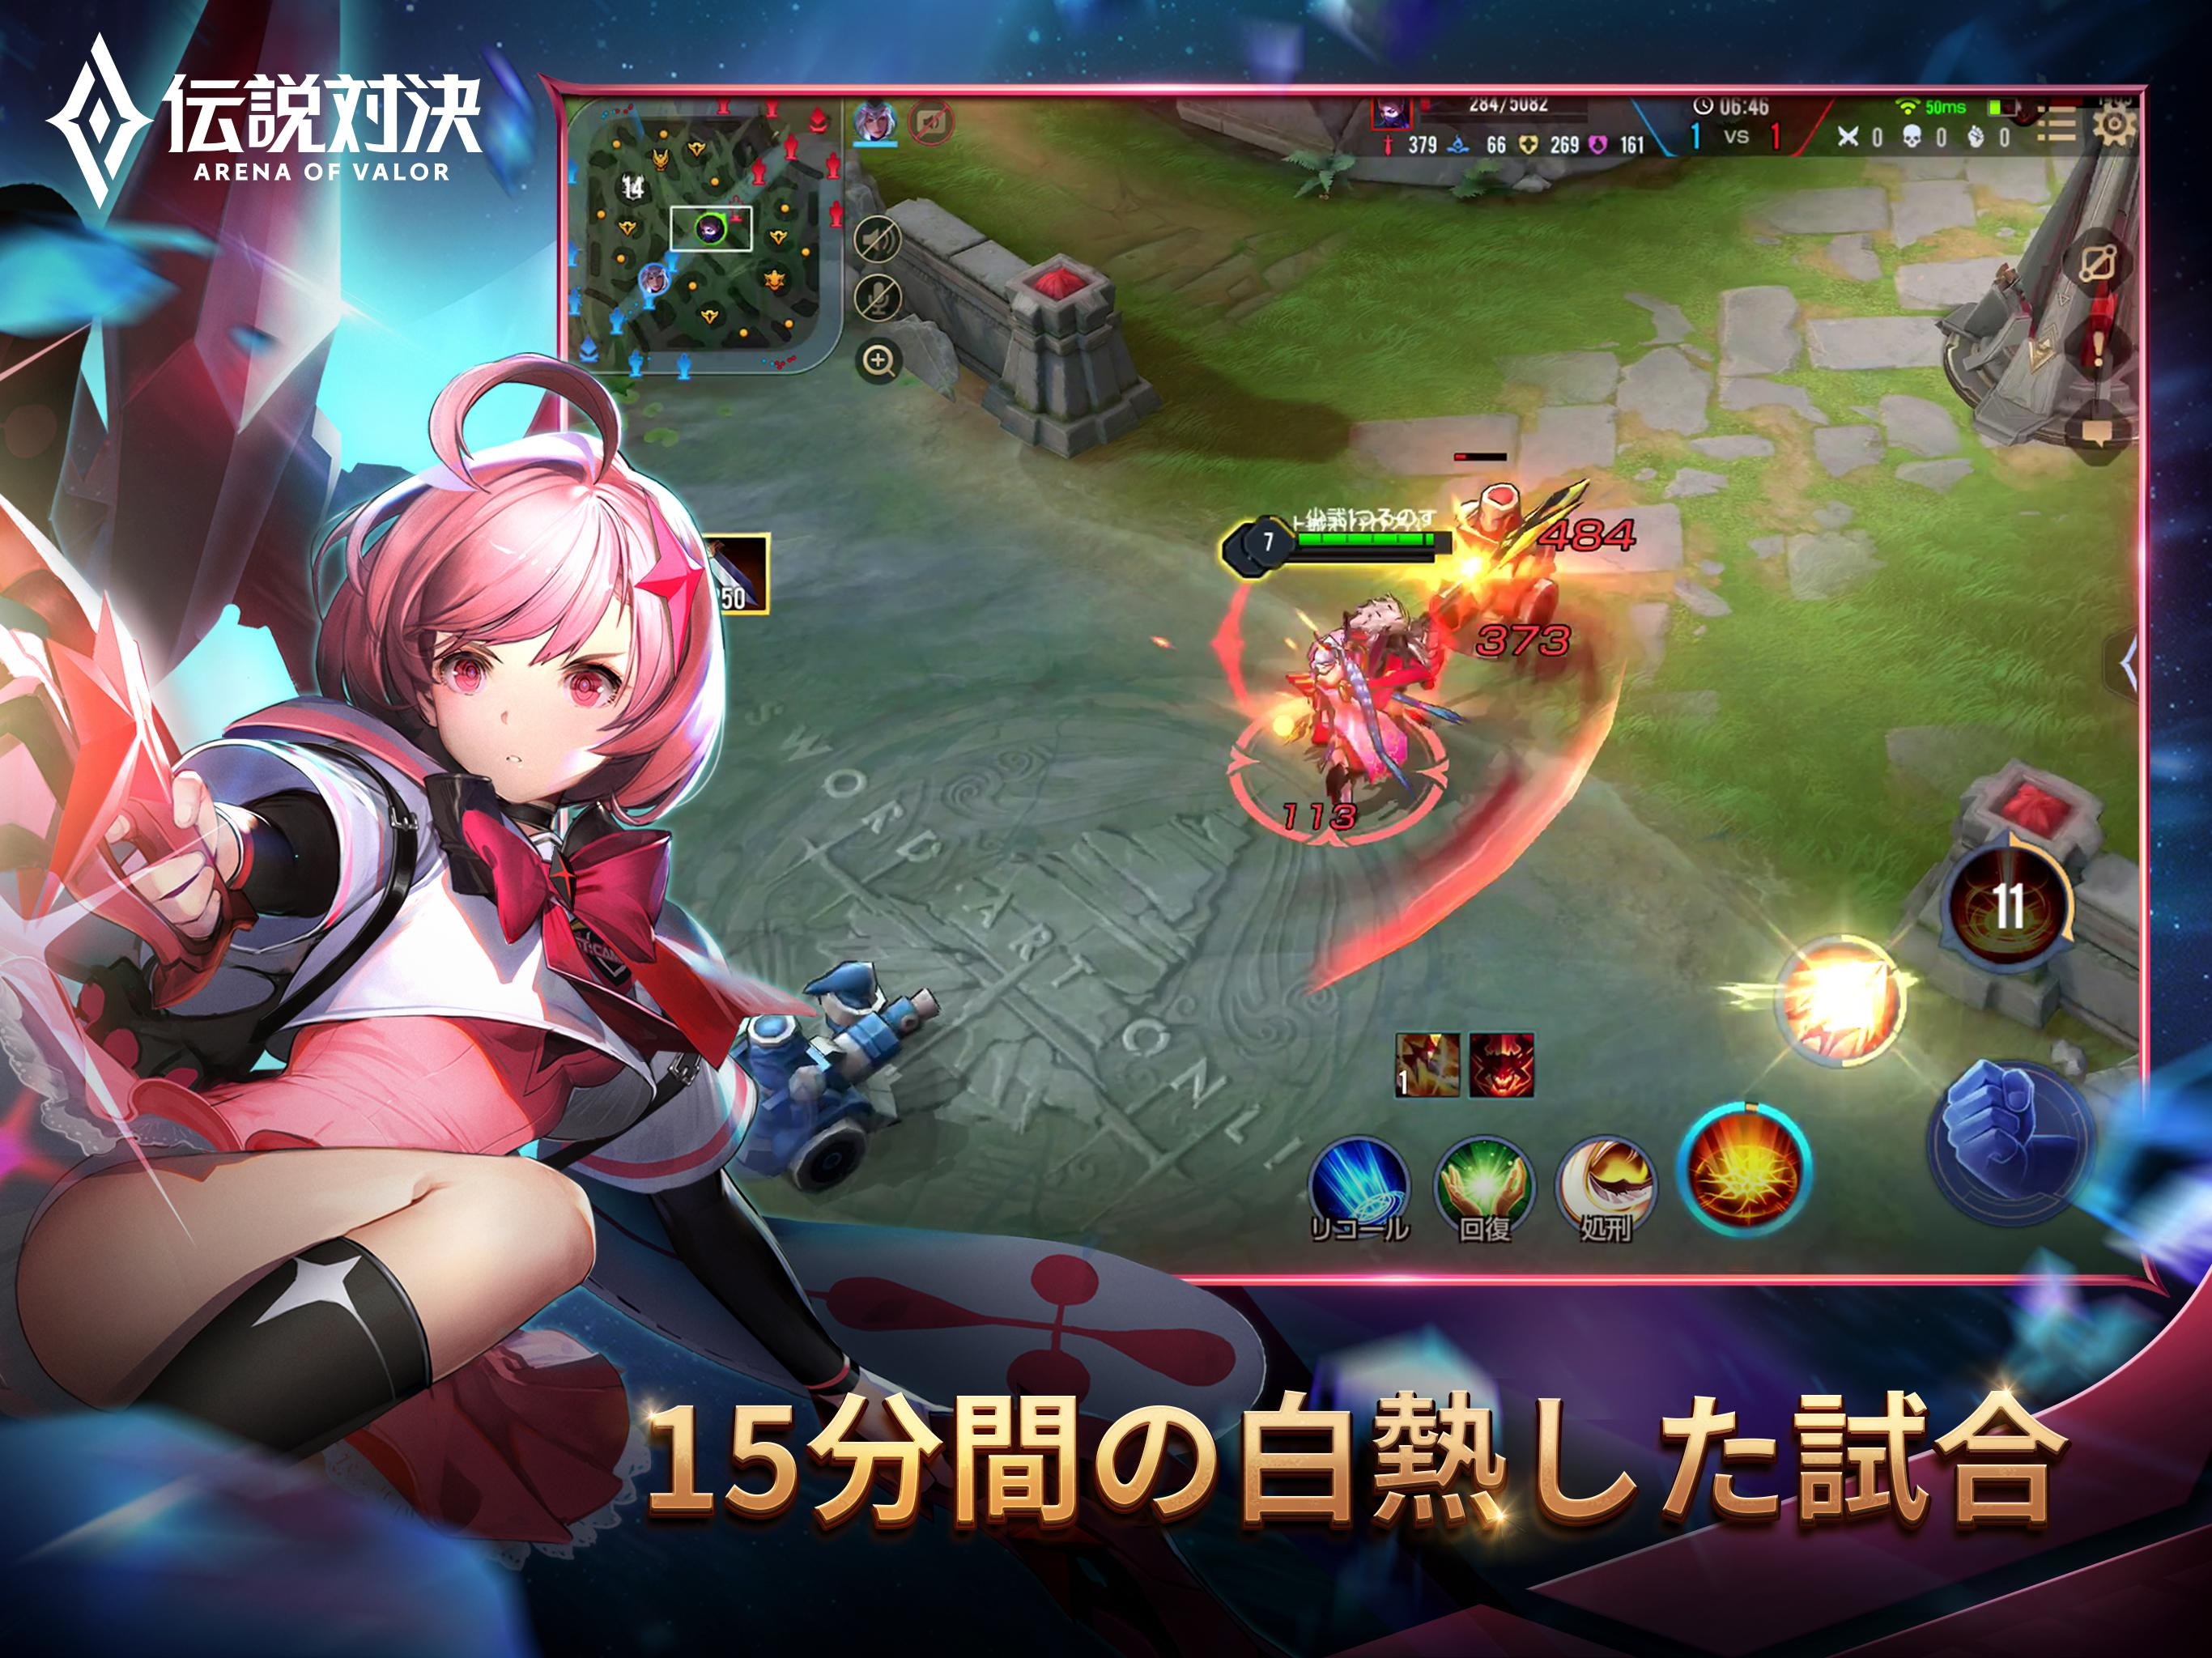 伝説対決 Arena of Valor 1.36.1.8 Screenshot 14